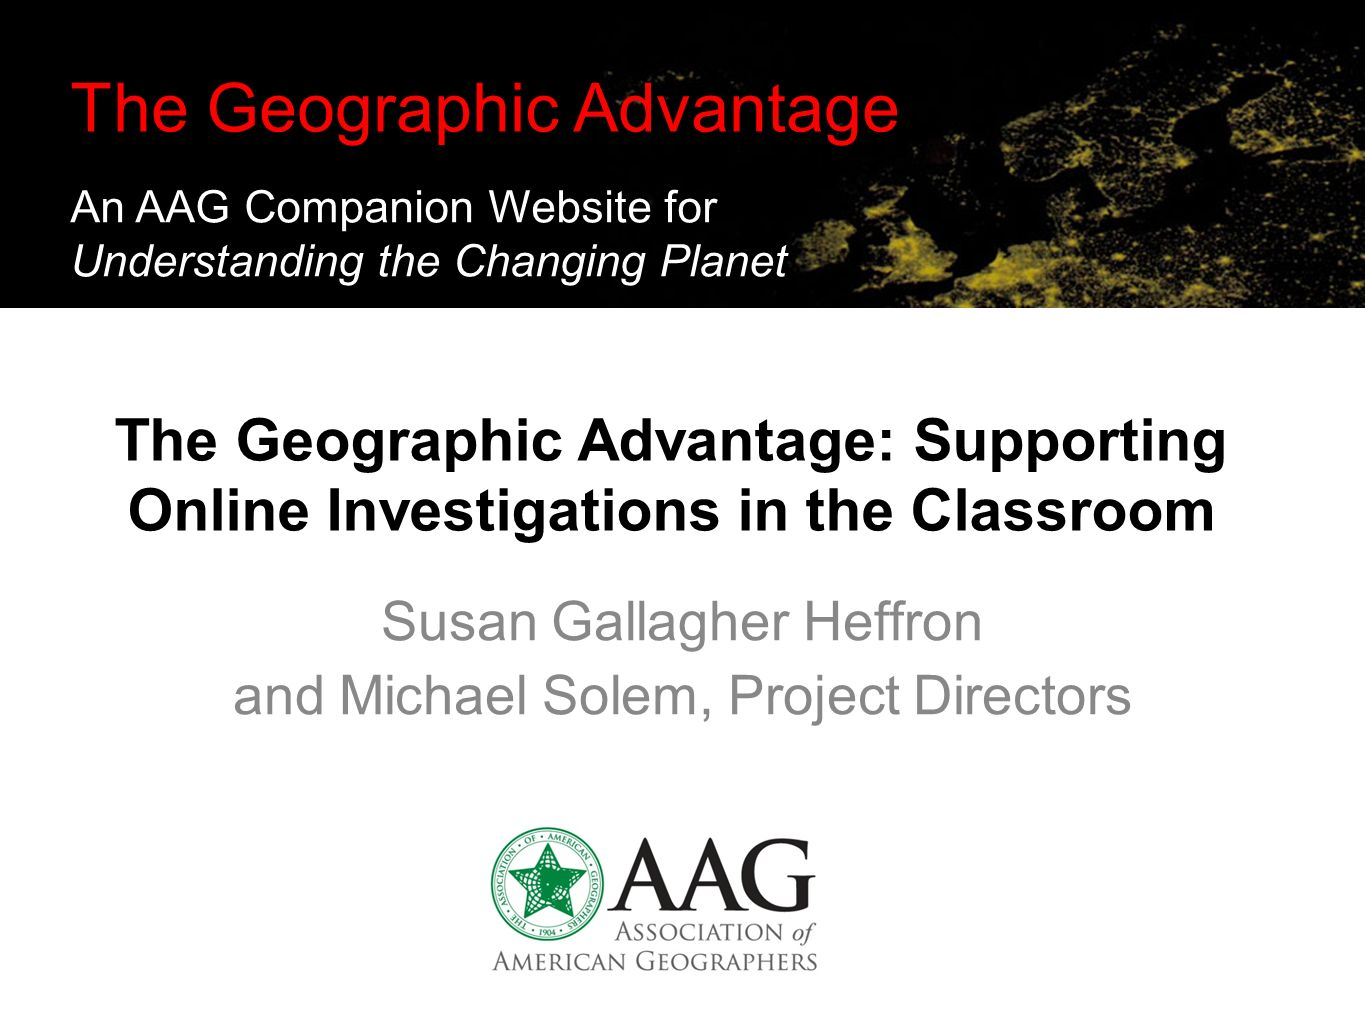 The Geographic Advantage: Supporting Online Investigations in the Classroom Susan Gallagher Heffron and Michael Solem, Project Directors The Geographic Advantage An AAG Companion Website for Understanding the Changing Planet